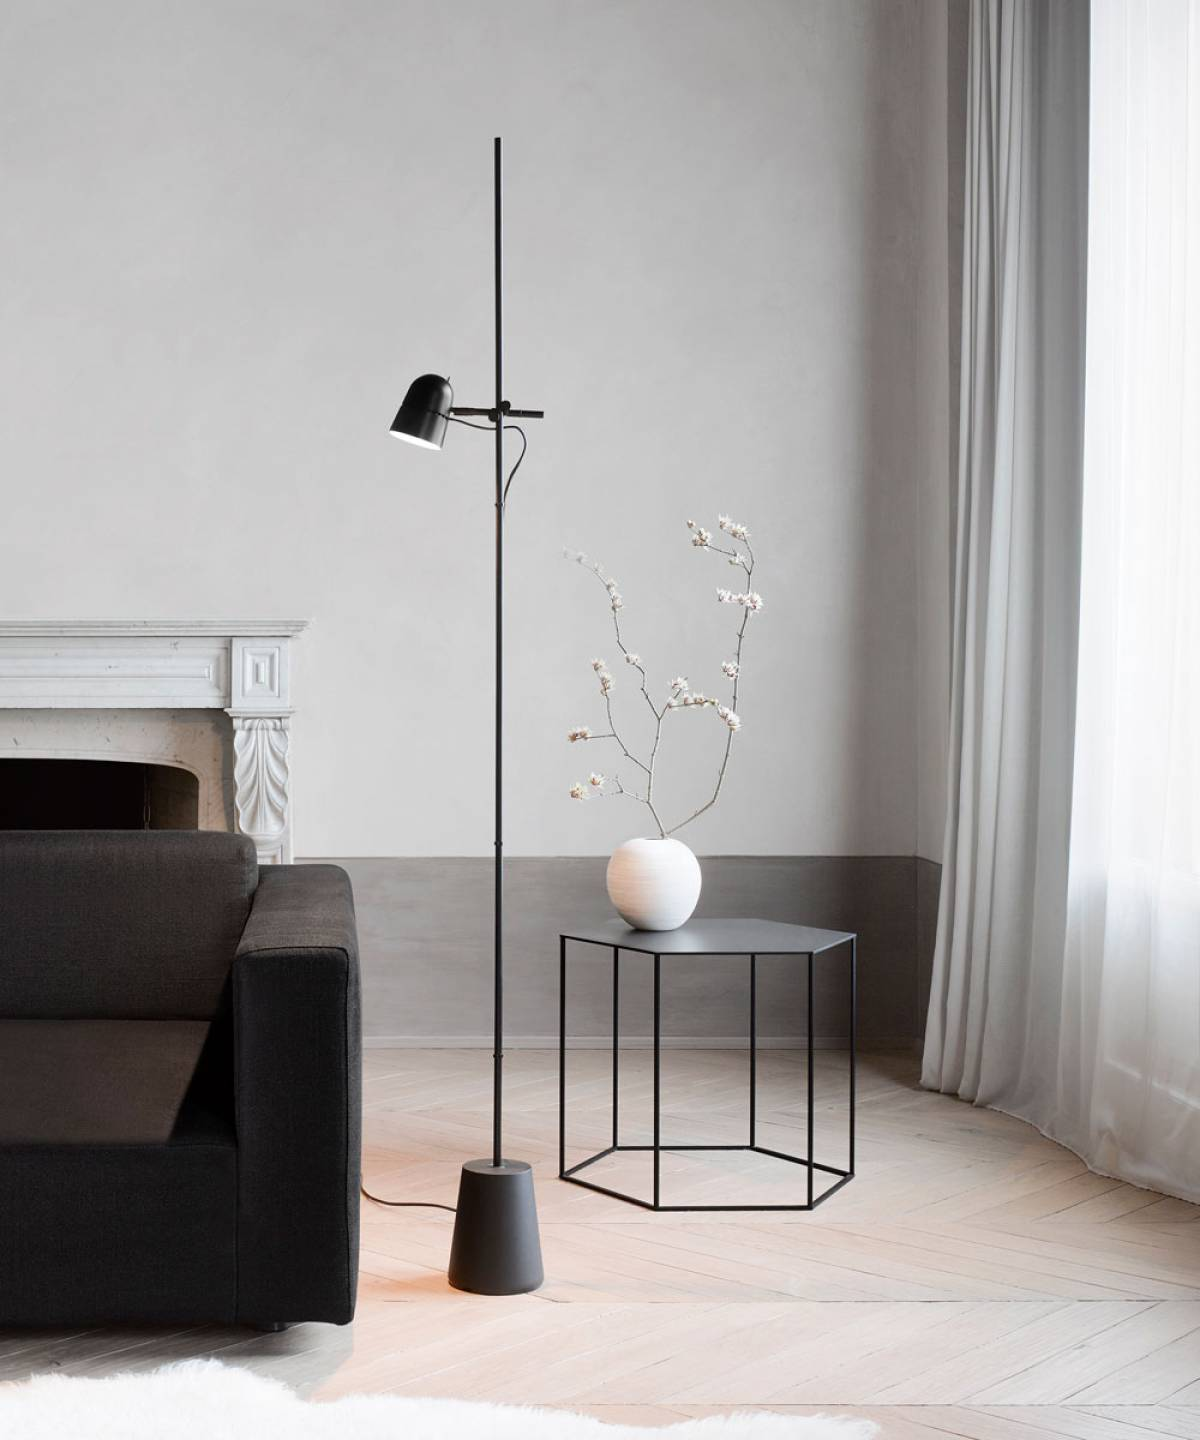 1 Counterbalance floor lamp Luceplan